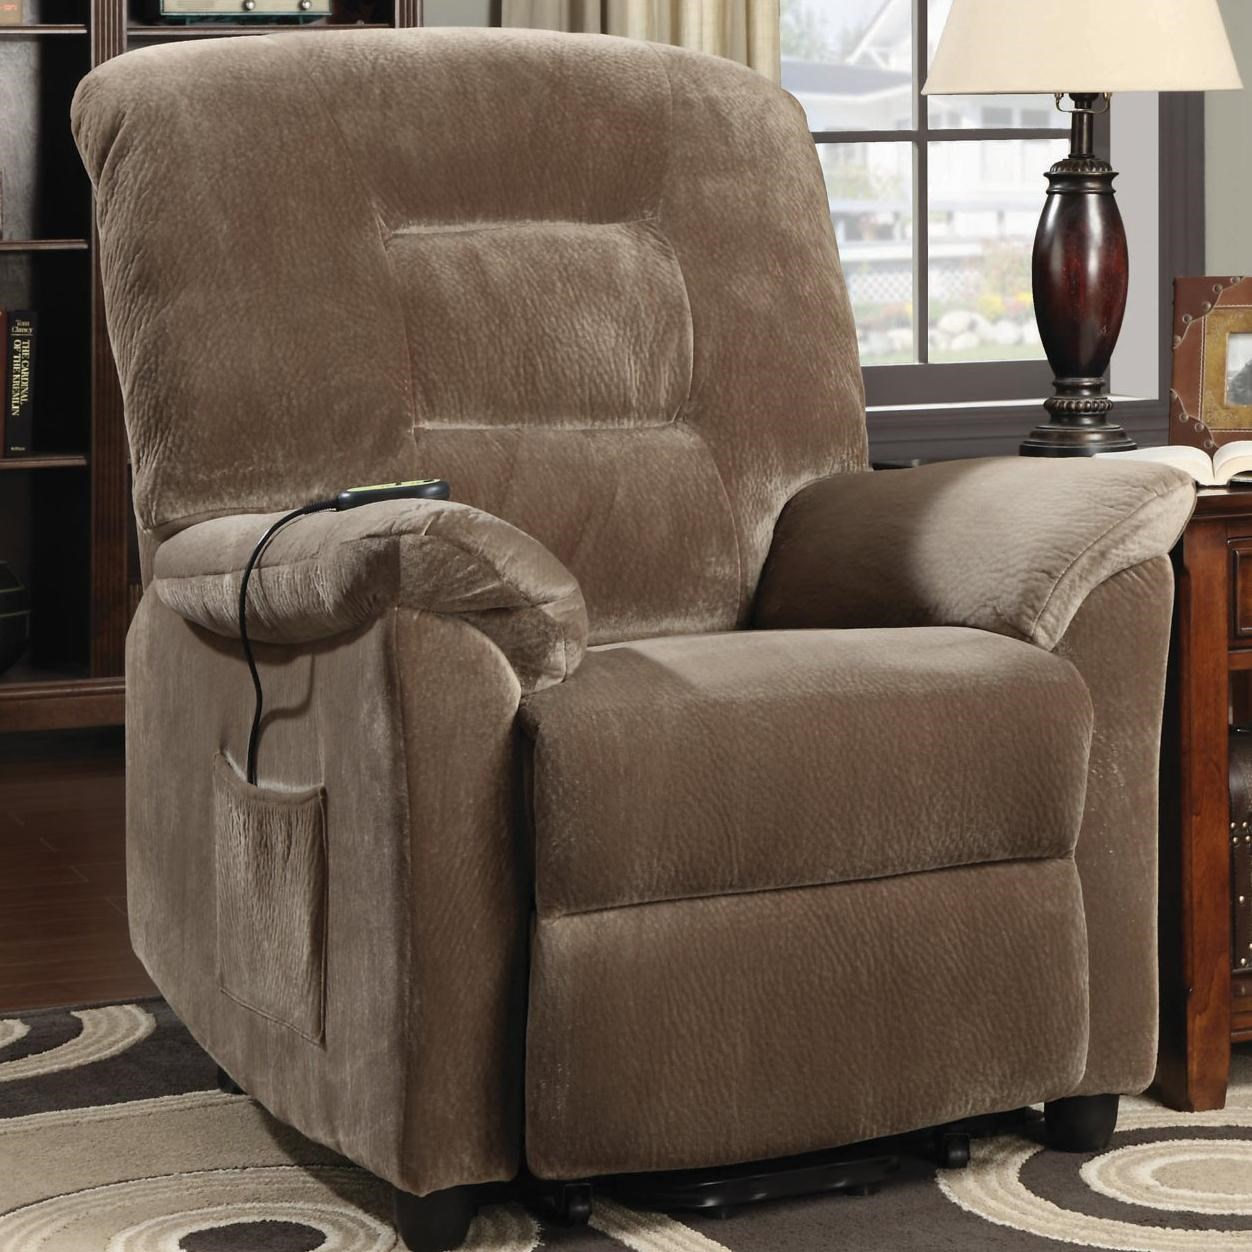 Coaster Recliners Casual Power Lift Recliner with Brown Sugar Upholstery - Coaster Fine Furniture & Coaster Recliners Casual Power Lift Recliner with Brown Sugar ... islam-shia.org